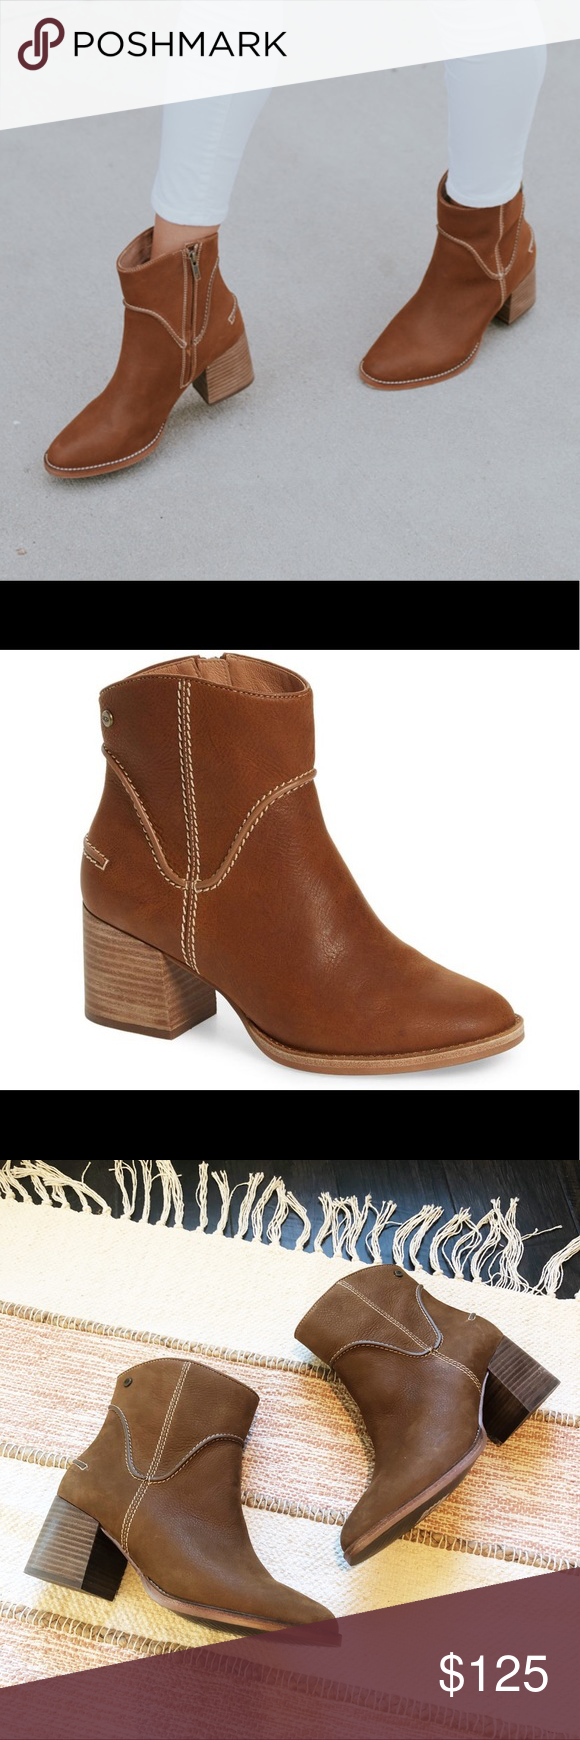 b4f67e5e119 Ugg Annie Chestnut Leather Booties Excellent pre owned condition ...